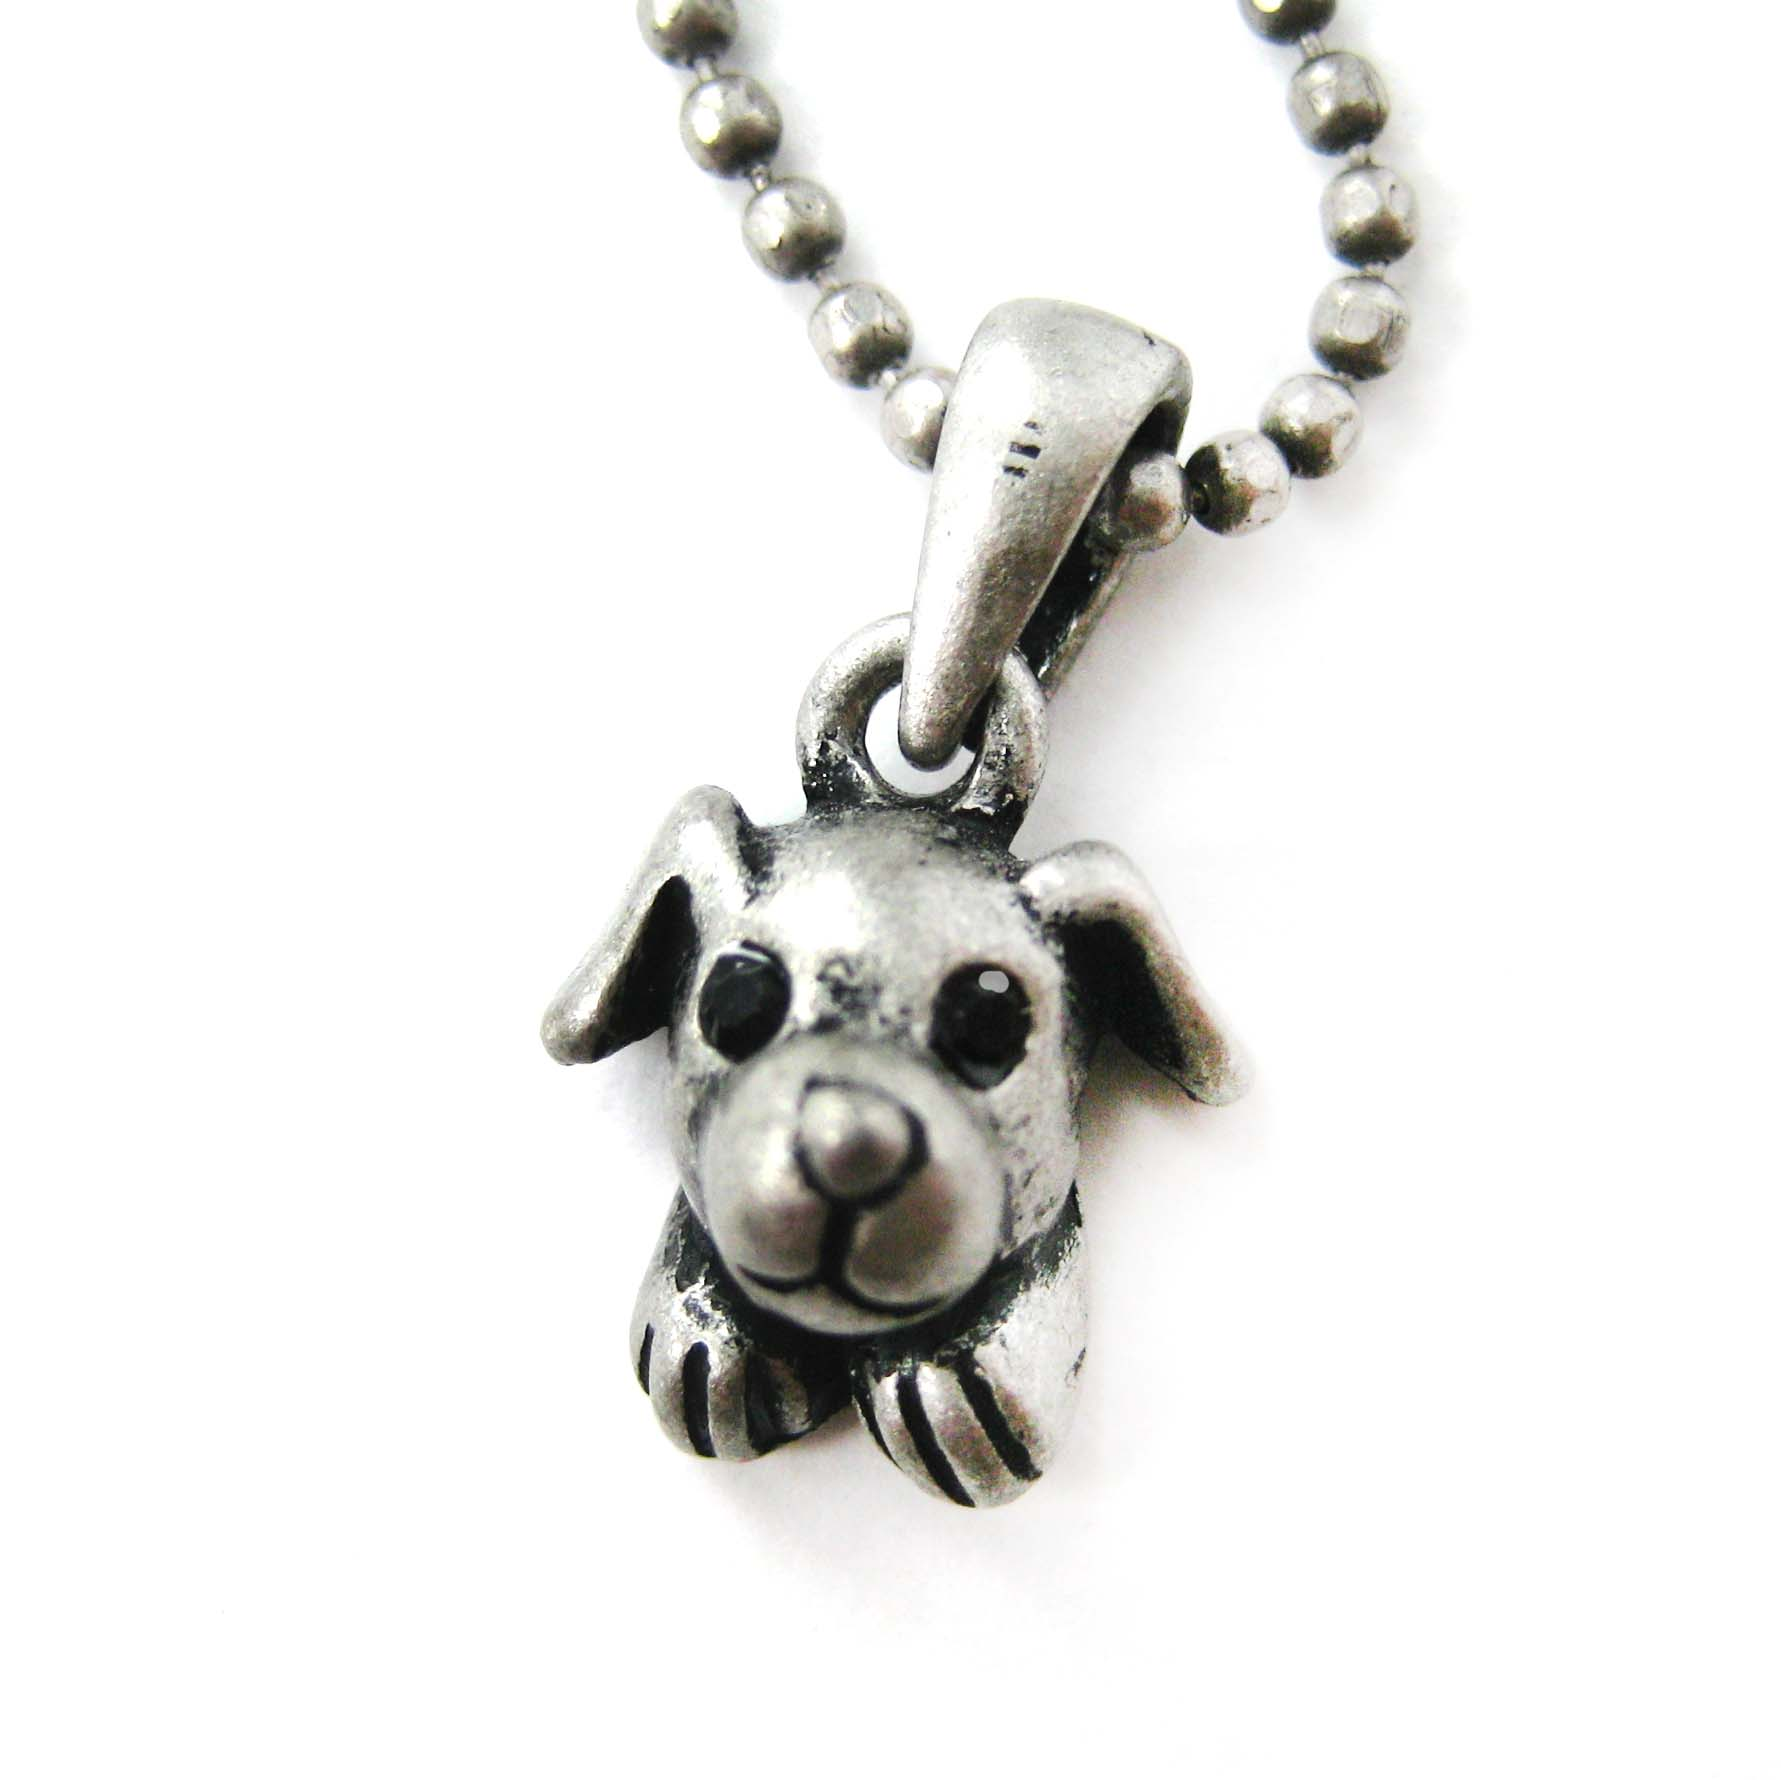 adorable puppy animal charm pendant necklace in silver